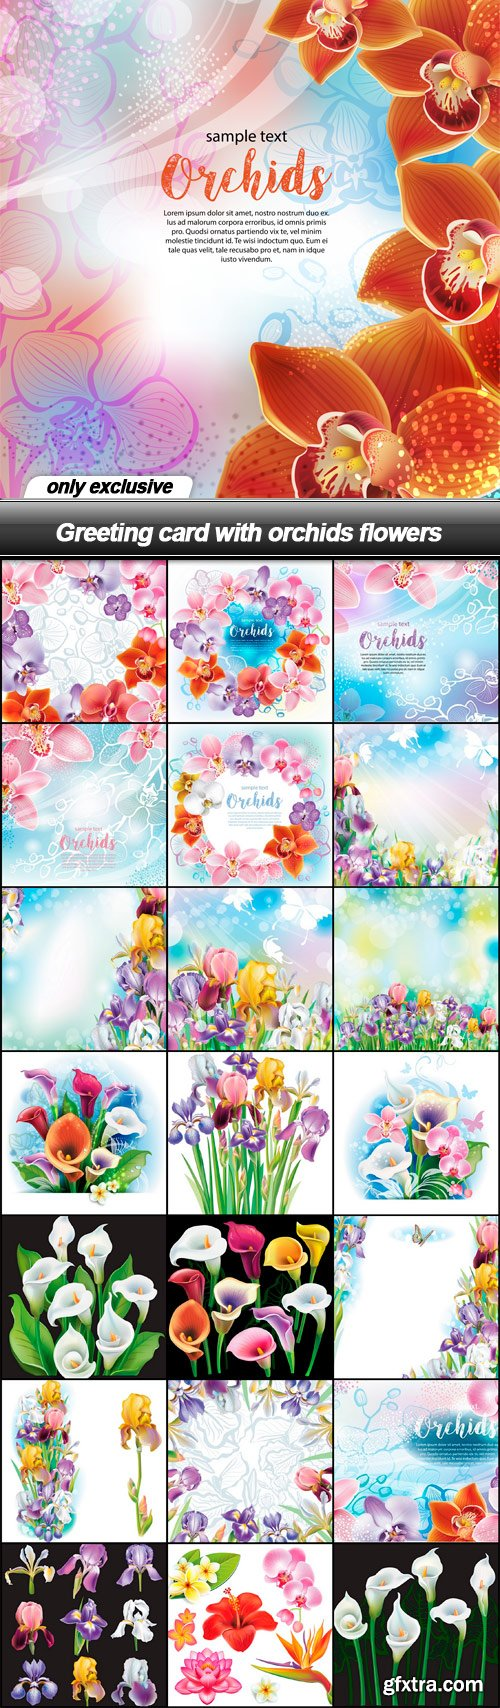 Greeting card with orchids flowers - 22 EPS